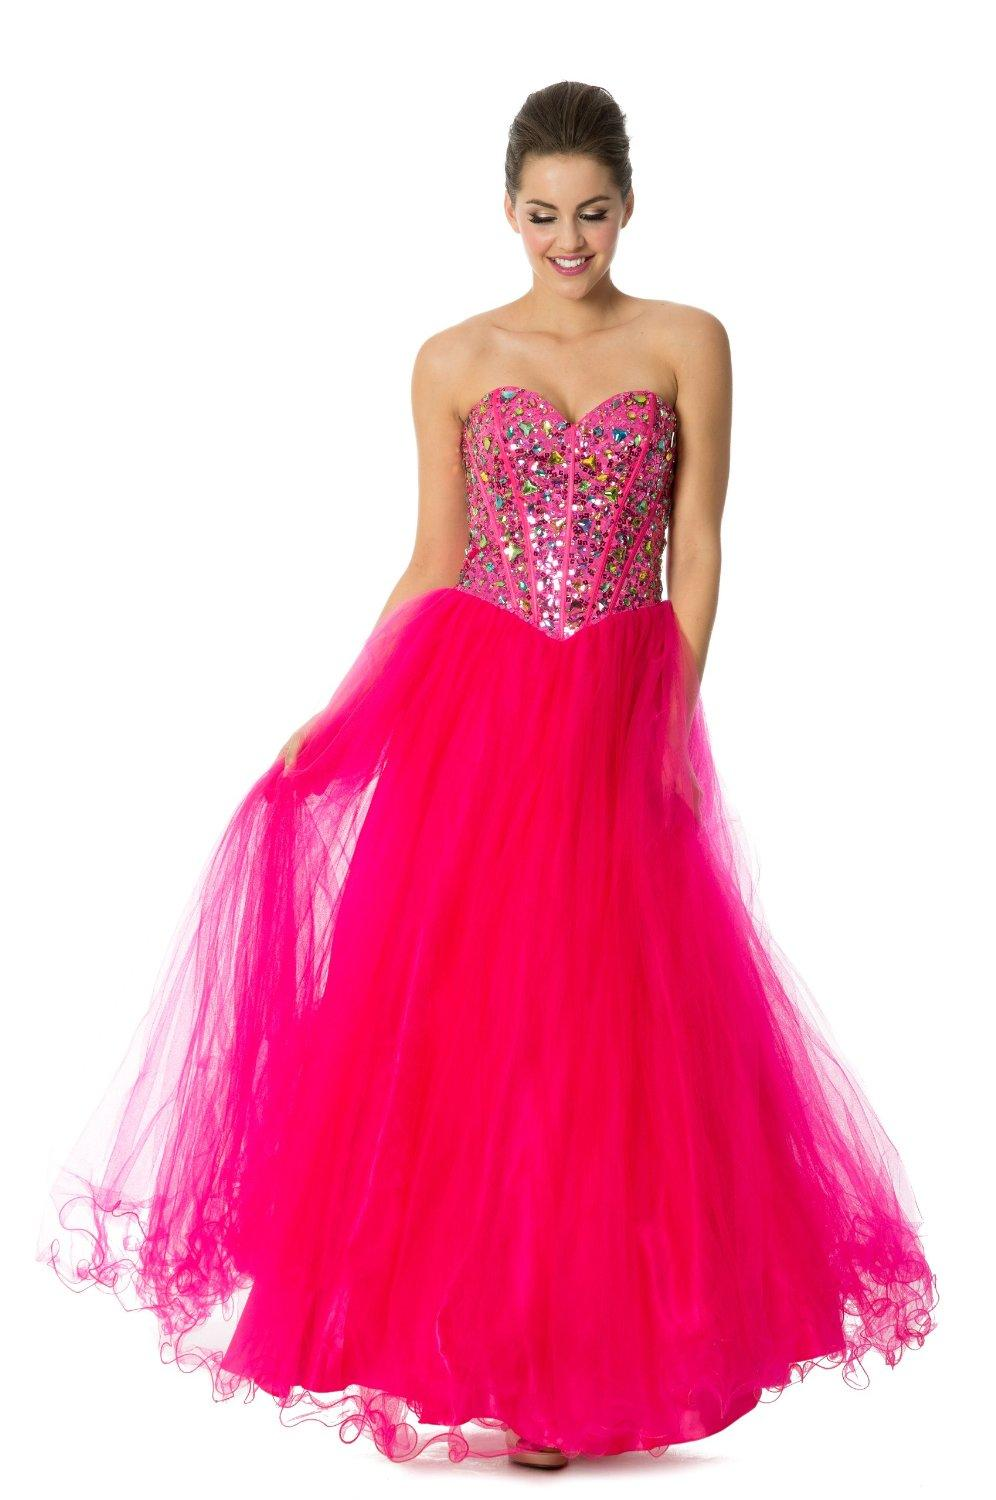 Donate Prom Dresses Kansas City - Flower Girl Dresses